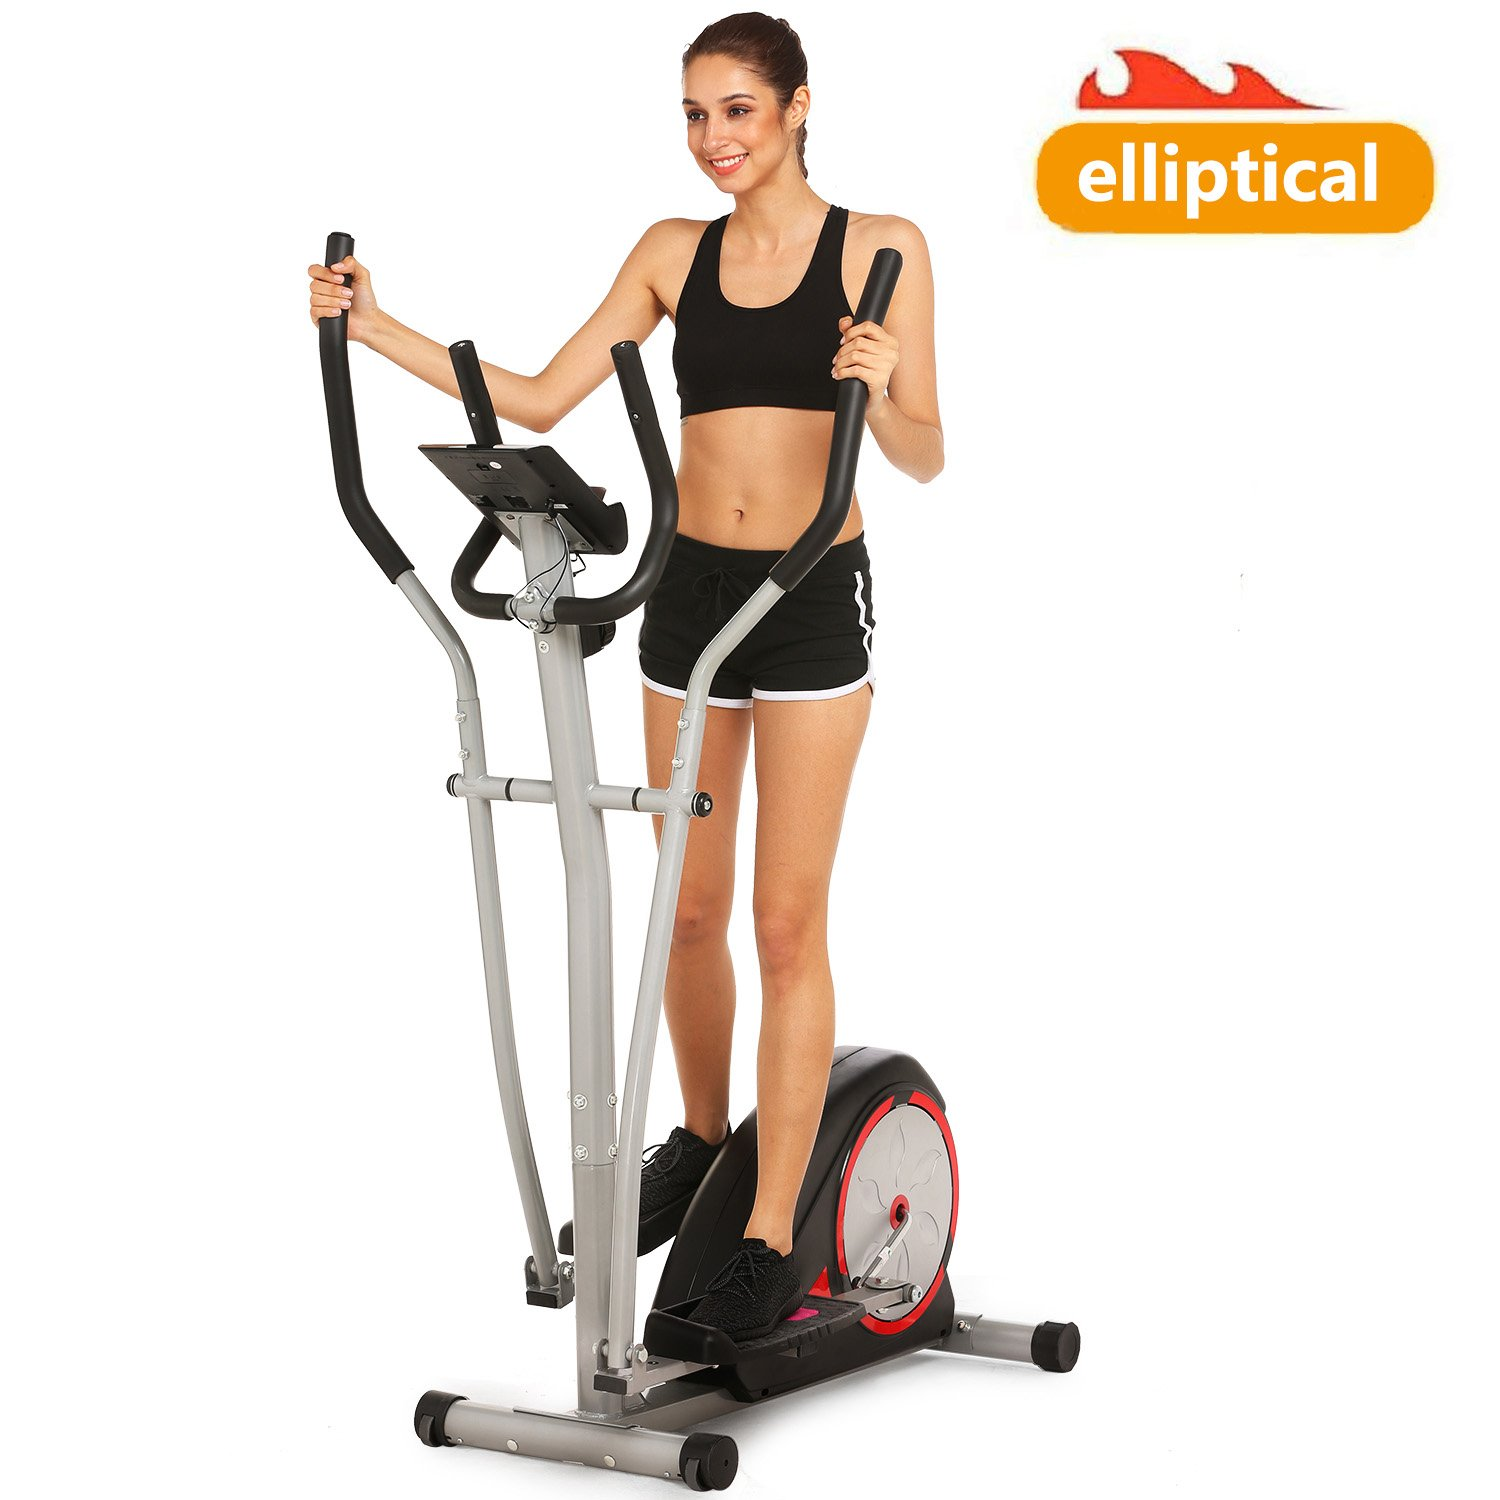 Bestlucky Elliptical Trainer Machines Magnetic Elliptical Workout Machine for Home Use (US Stock) Shown